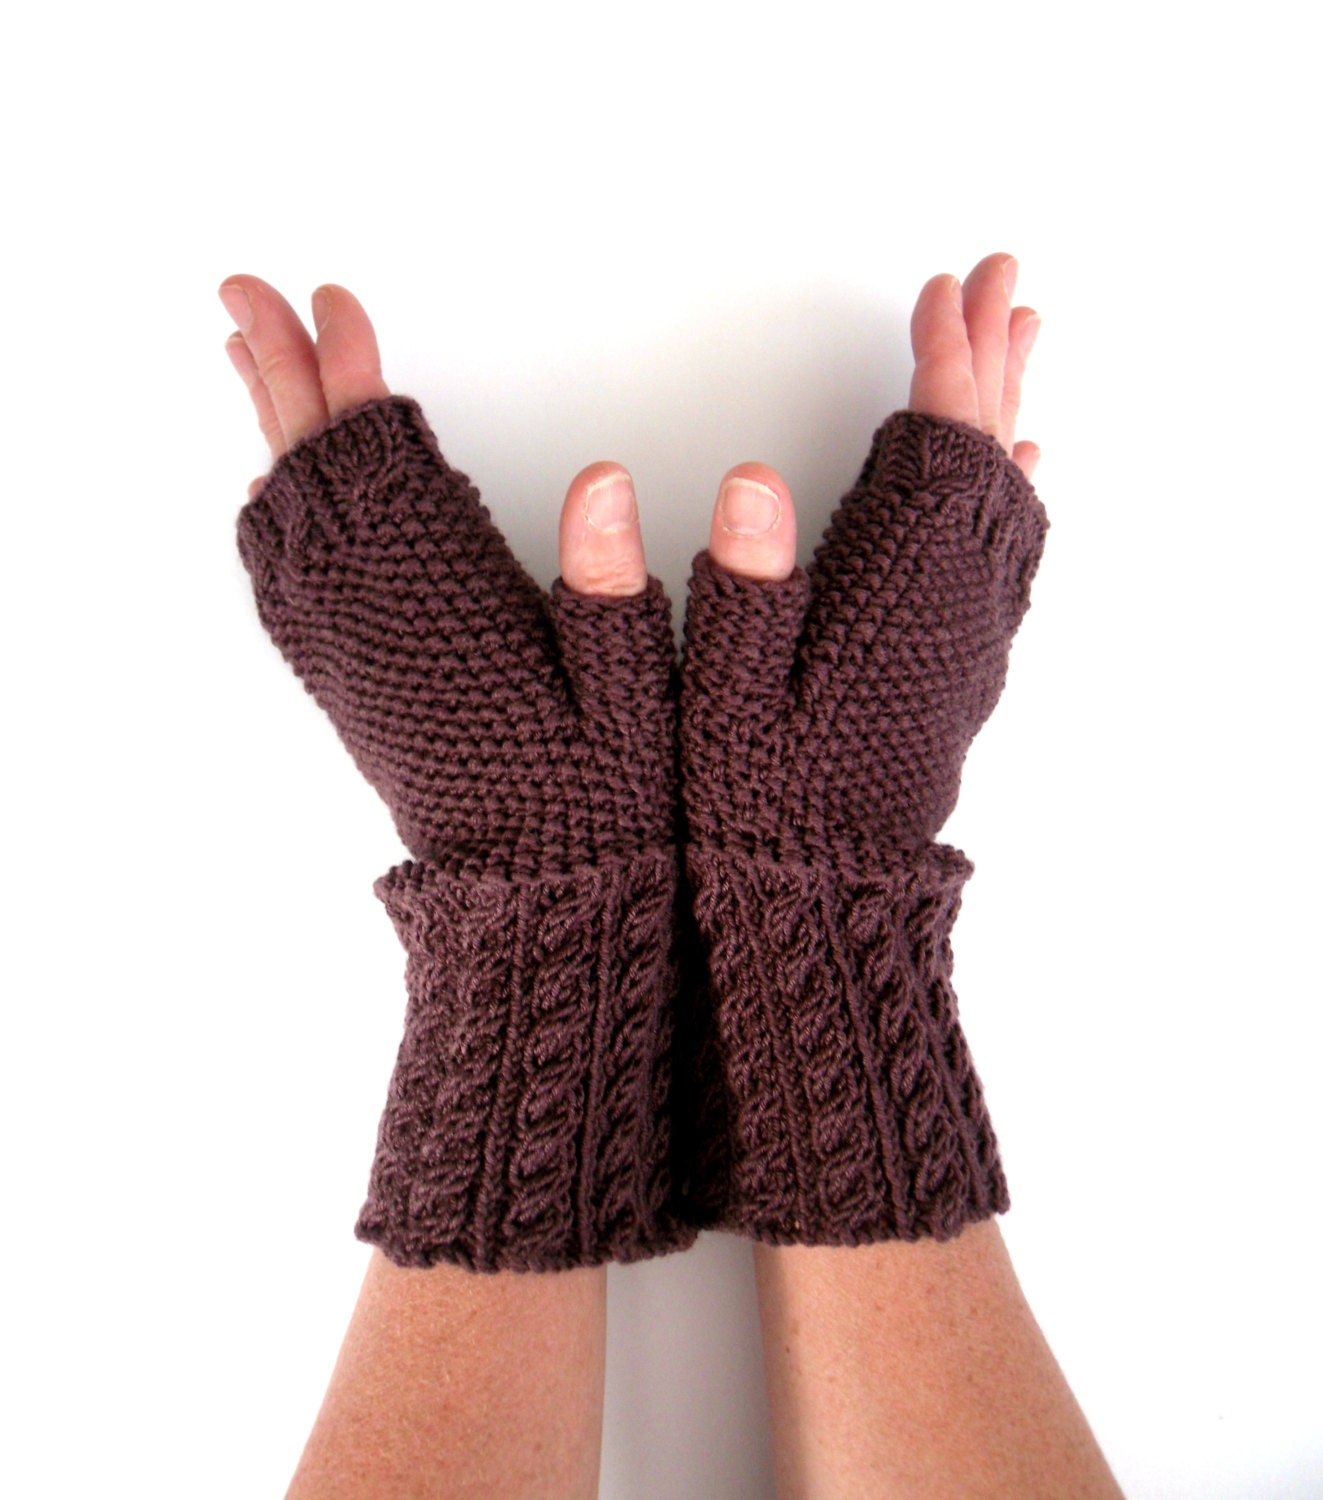 Knitting Pattern Cashmere Gloves : Cashmere / Silk fingerless gloves knitted hand warmers warm